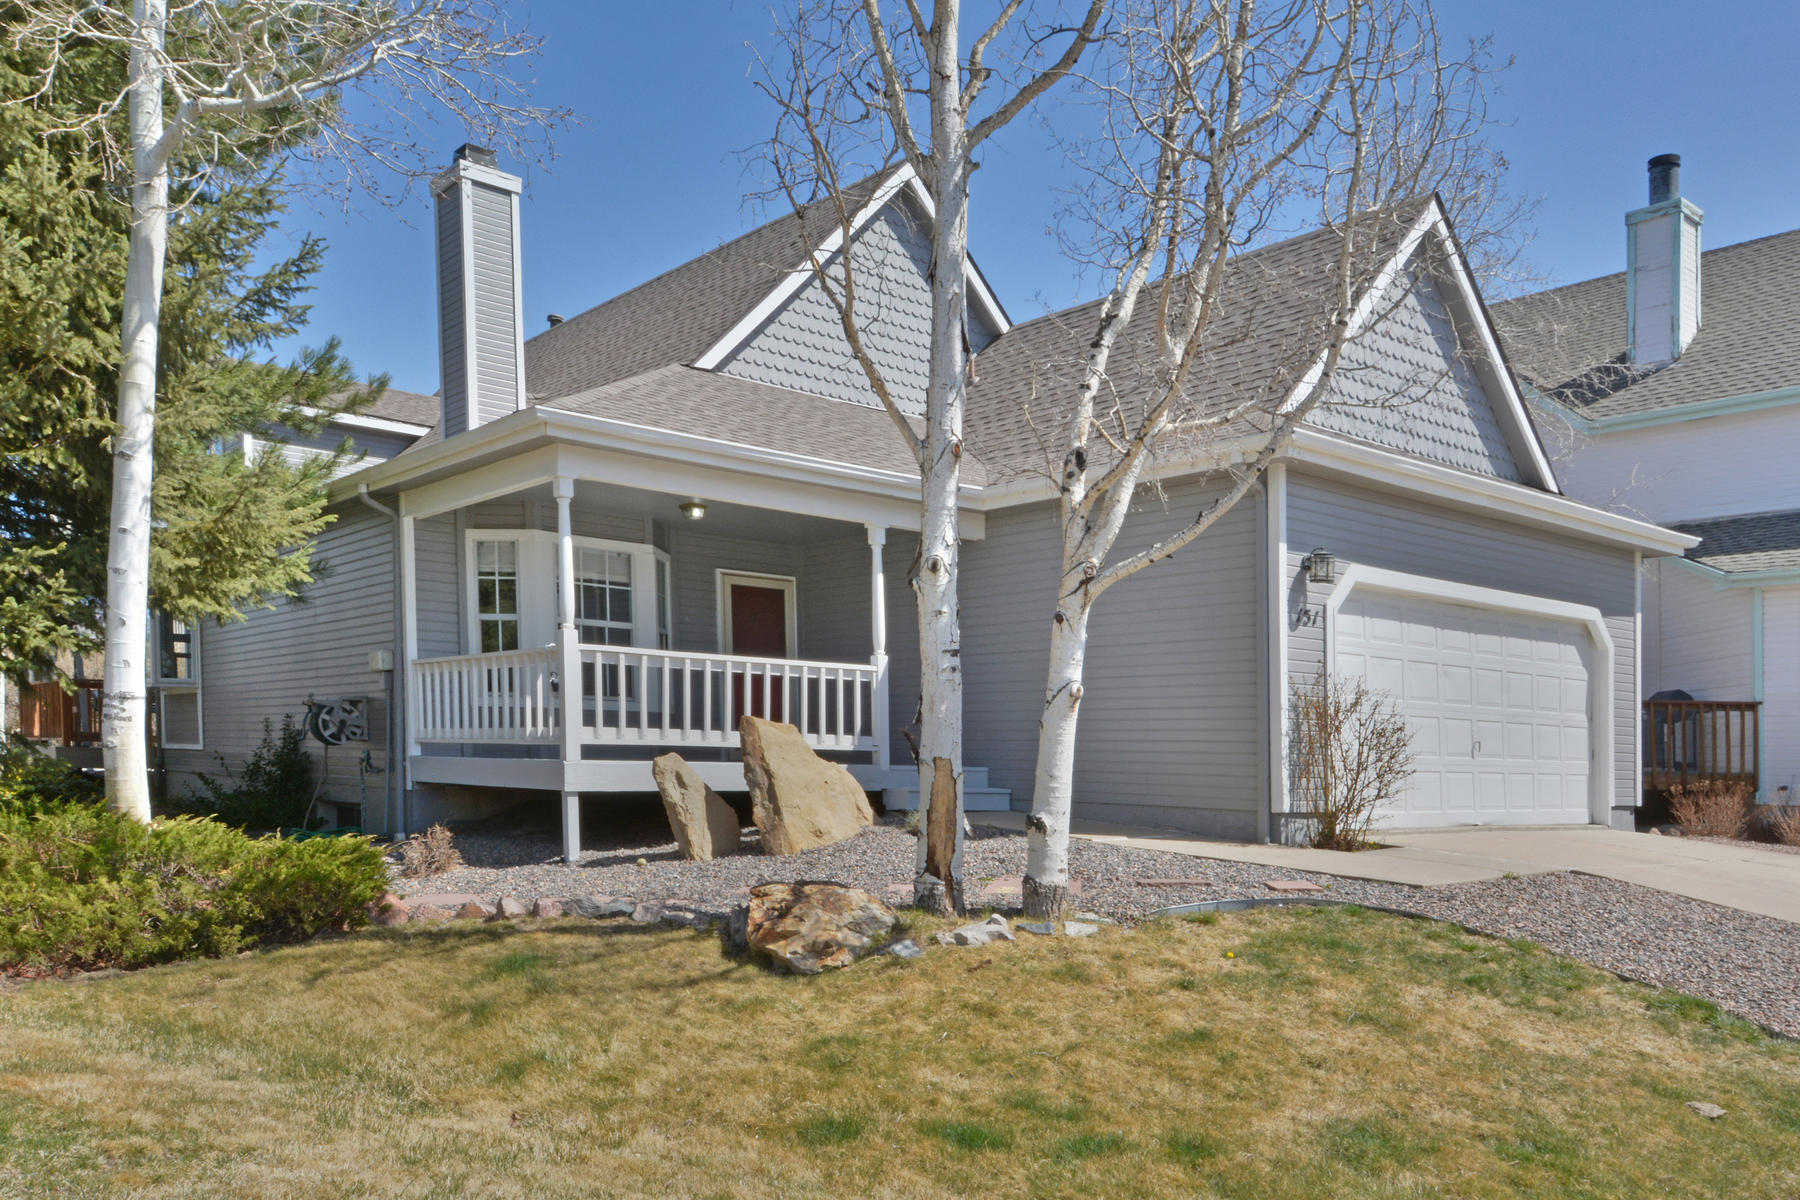 Single Family Home for Active at Move-In Ready Two-Story In Outlook 151 Wolf Creek Trl Broomfield, Colorado 80020 United States